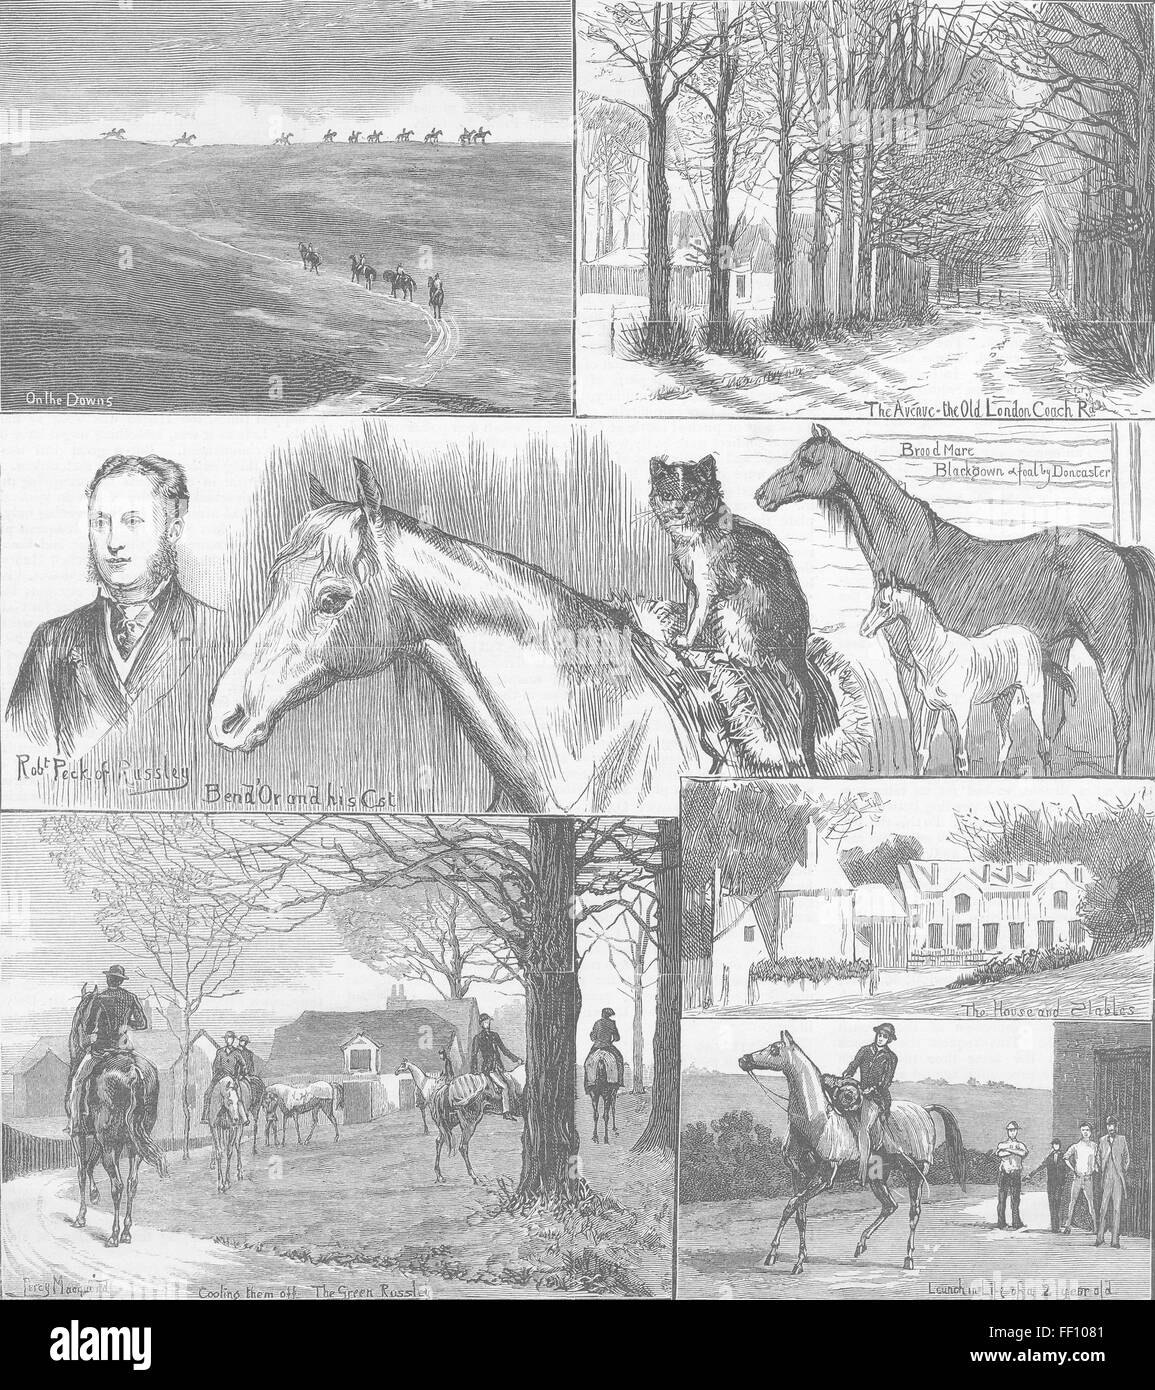 WILTS A day at the Russley Stables 1881. The Graphic - Stock Image